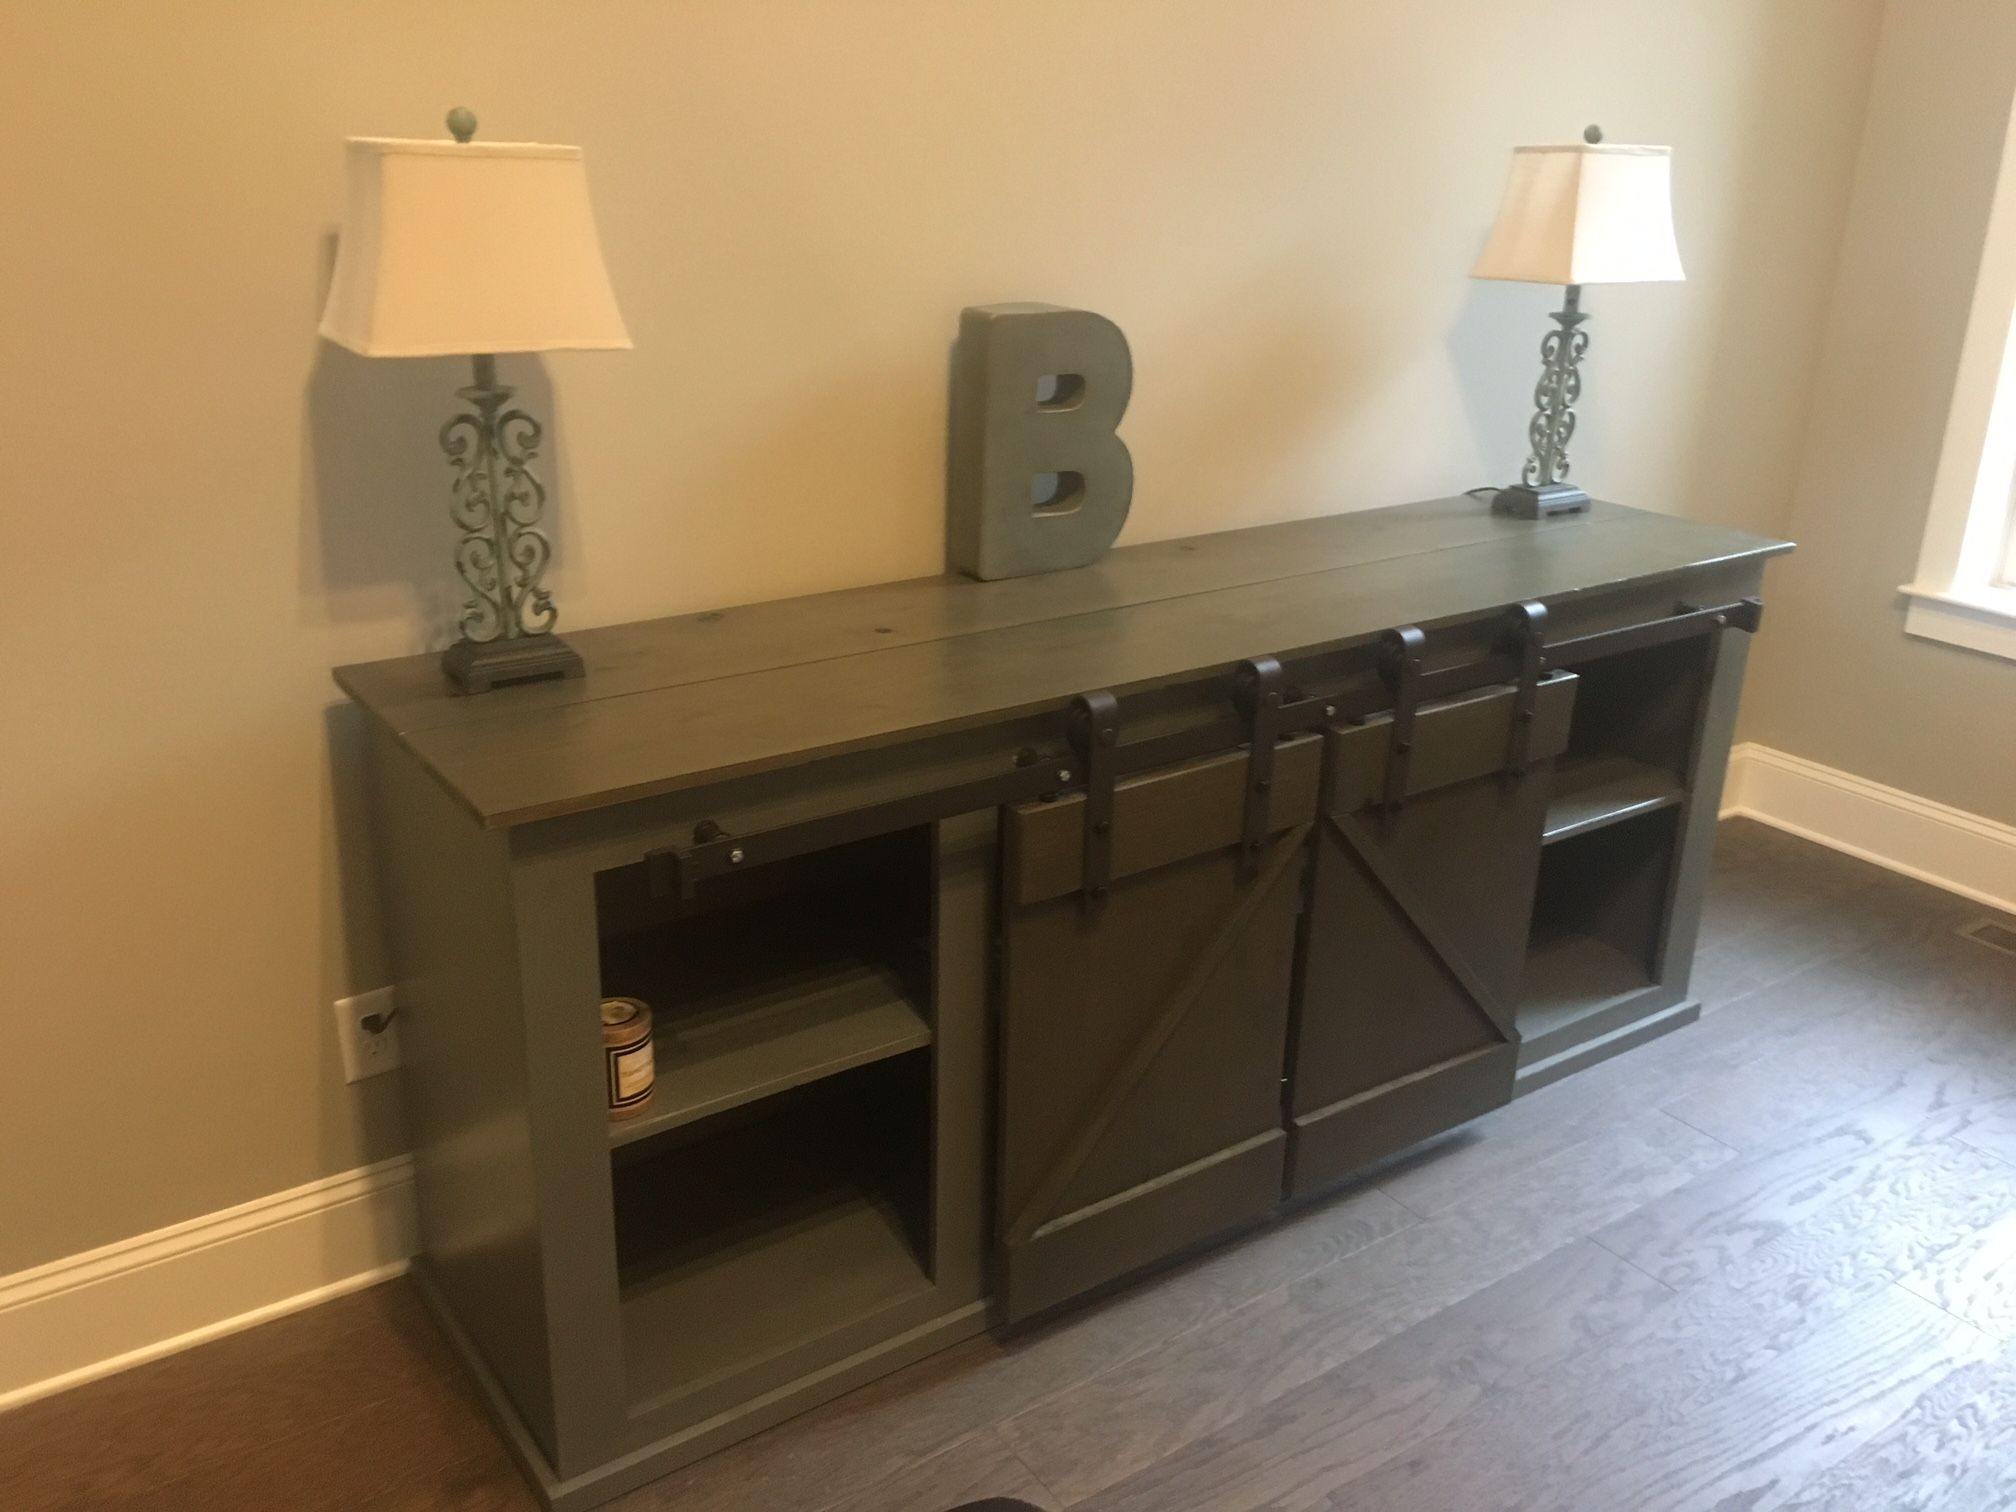 Sliding barn door media cabinet do it yourself home projects from ana white